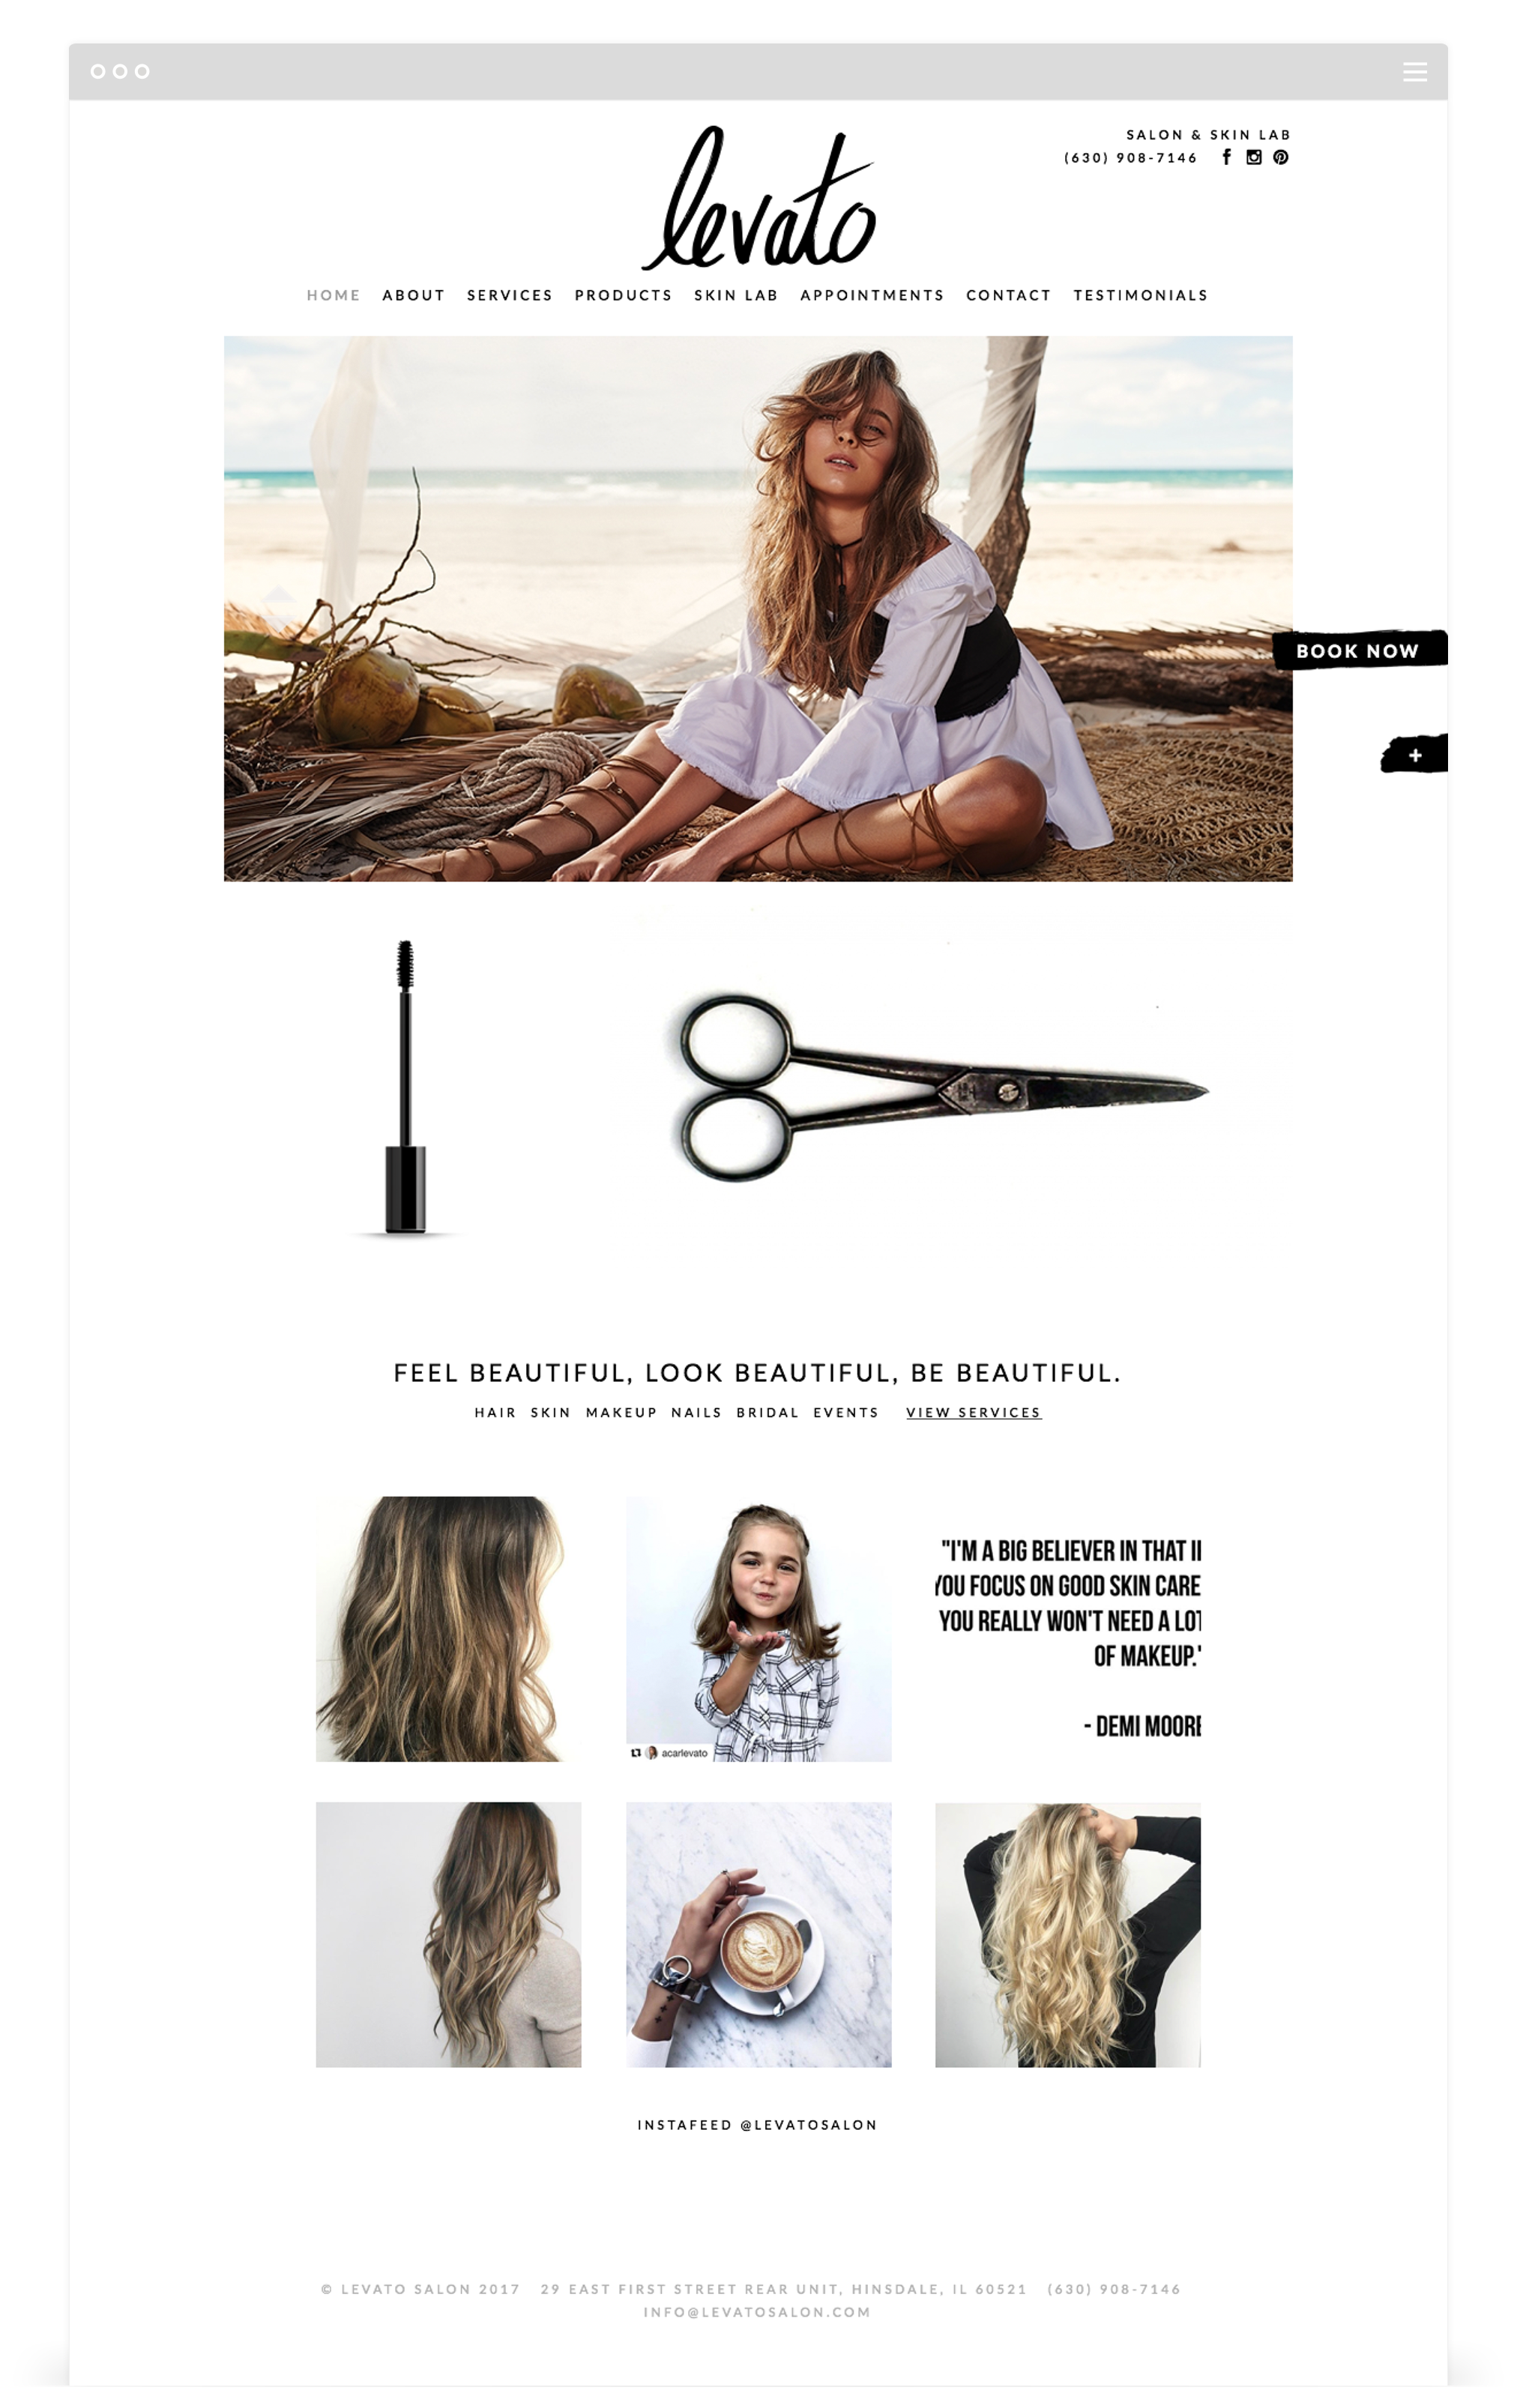 Website Development by Second + West for Levato Salon in Hinsdale, IL